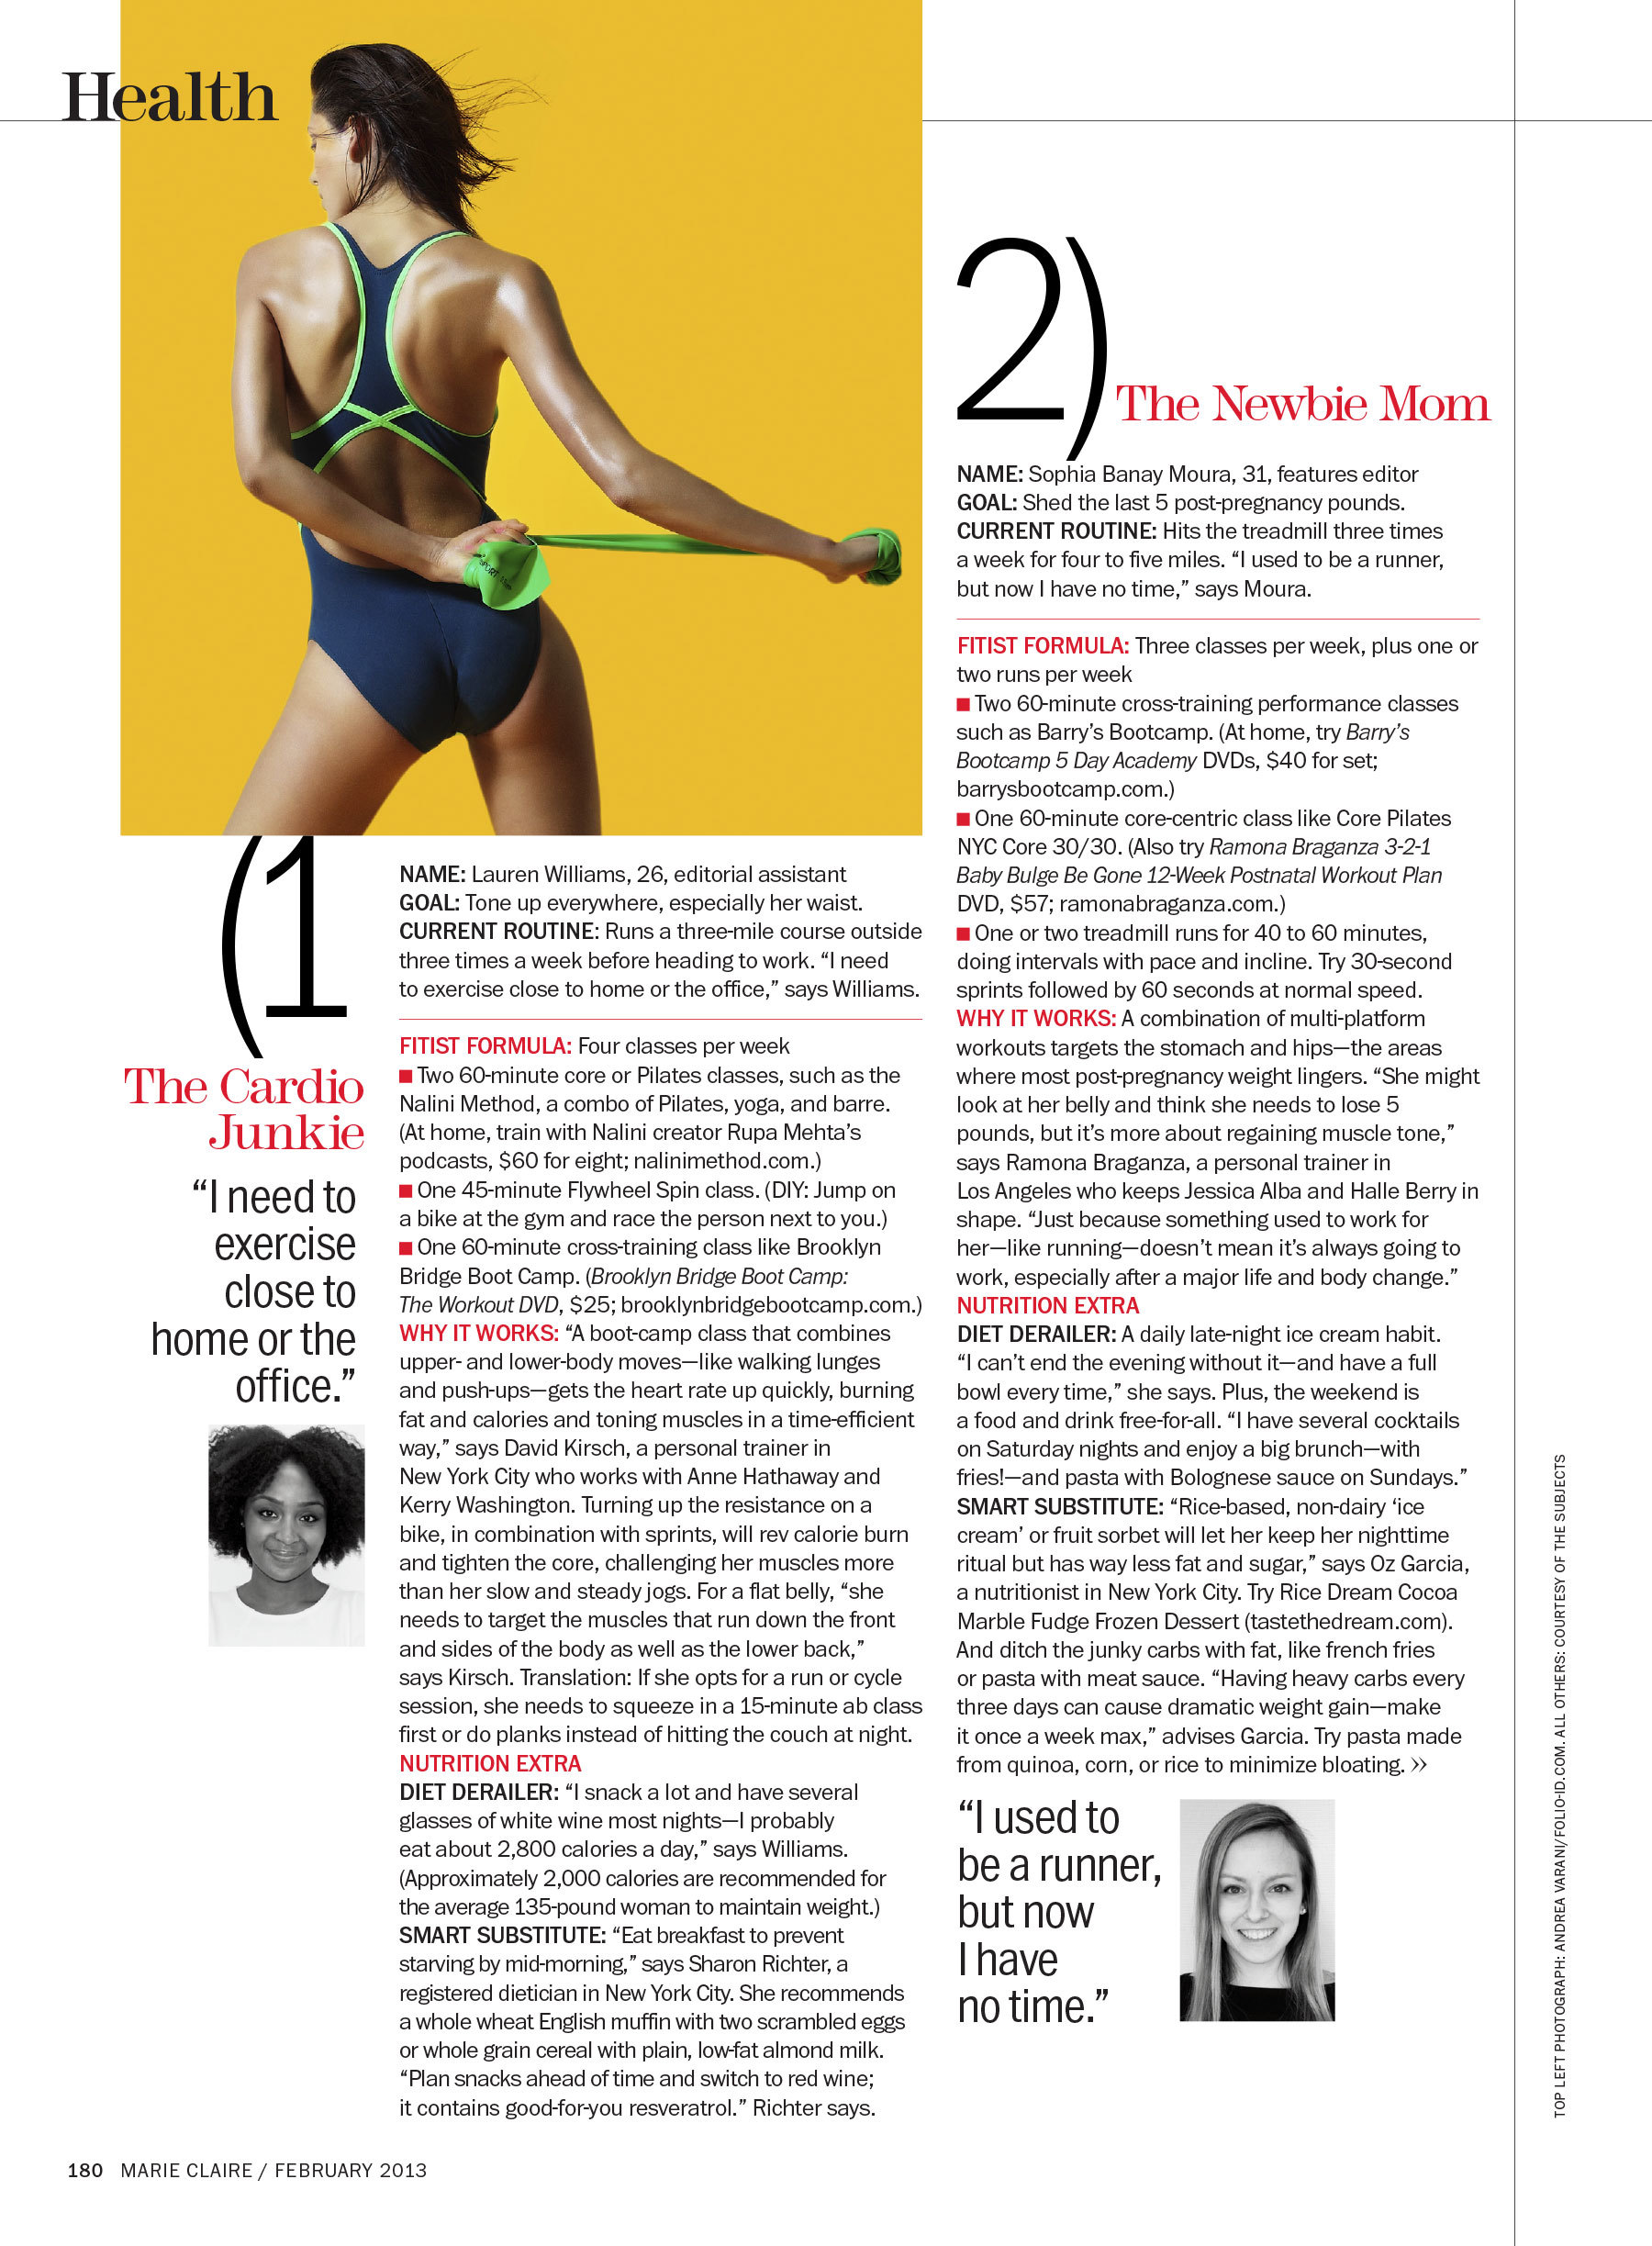 NicoleCatanese_MarieClaire_WhatsYourPerfectWorkout_B.jpg